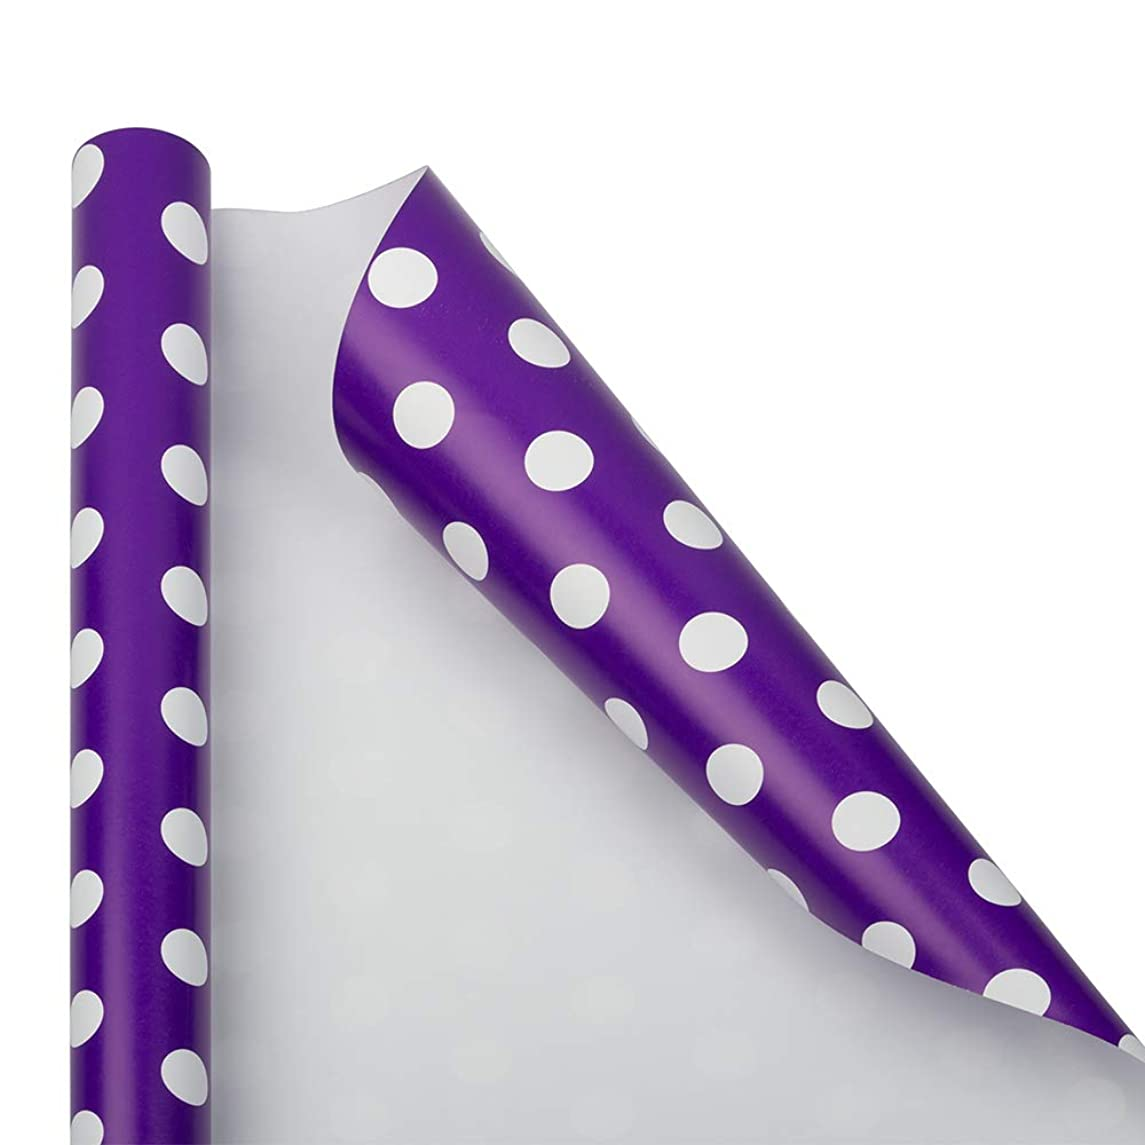 JAM PAPER Gift Wrap - Polka Dot Wrapping Paper - 25 Sq Ft - Purple with White Dots - Roll Sold Individually